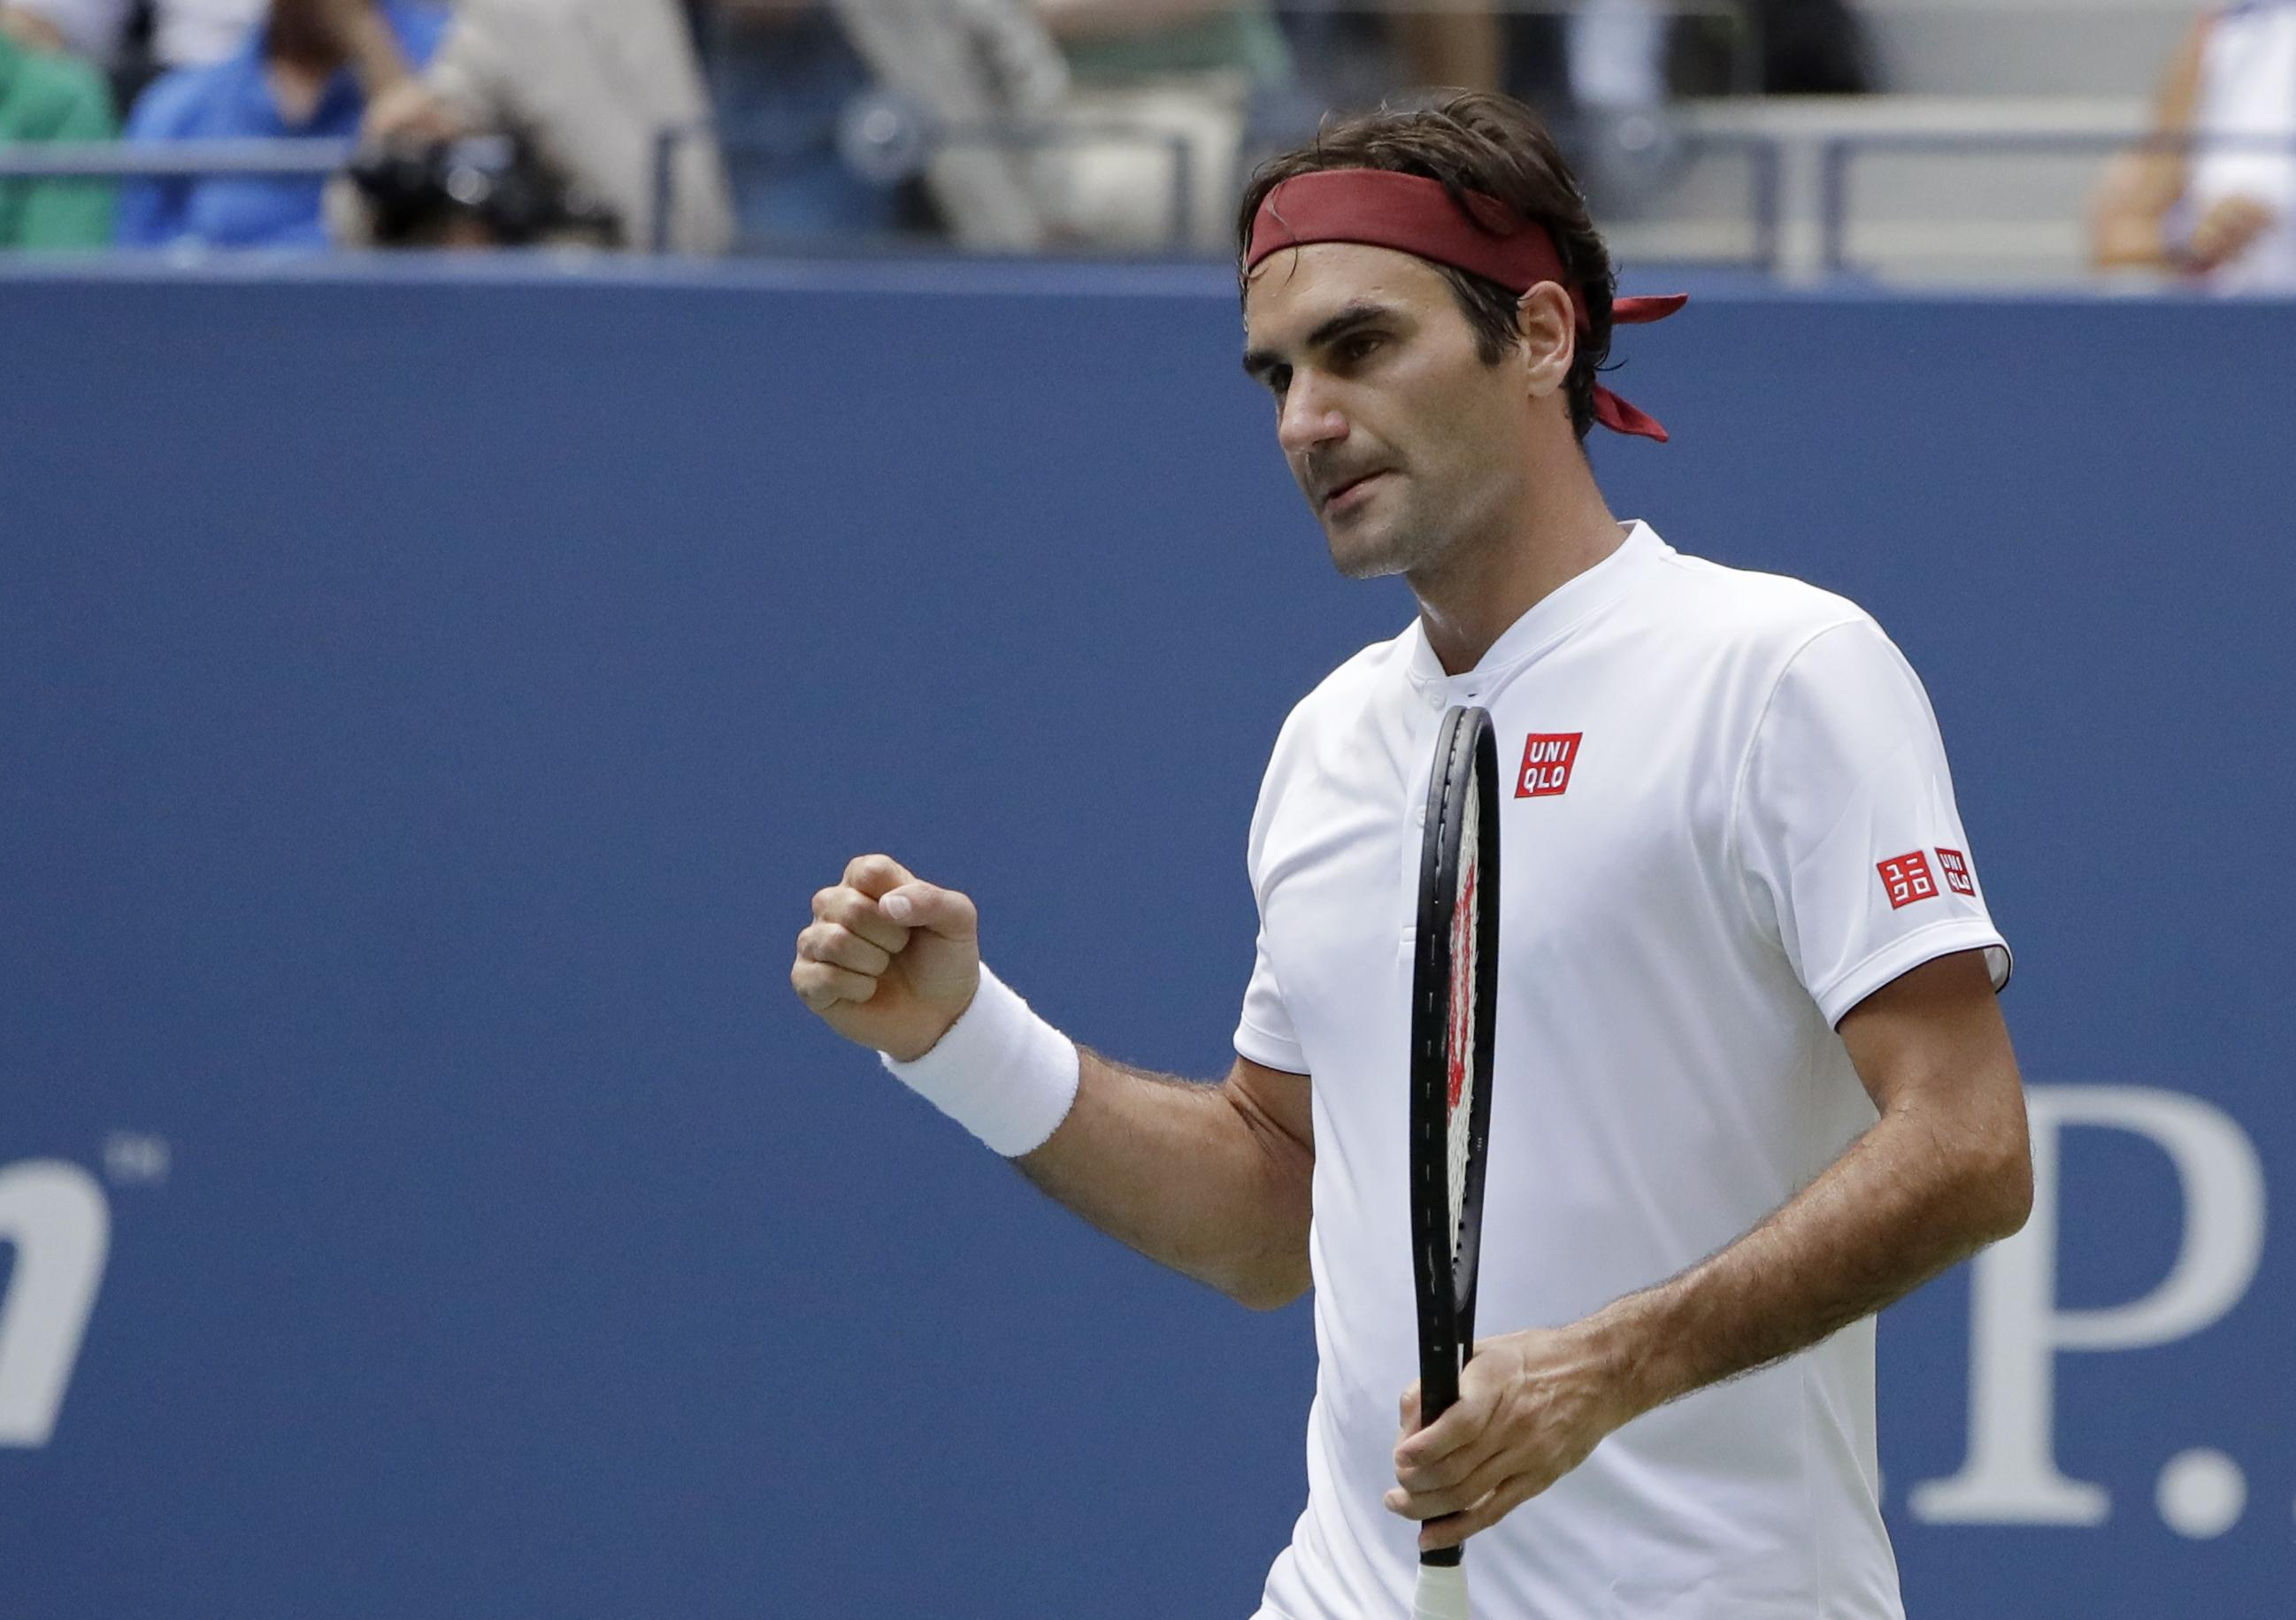 Roger Federer breezed past Benoit Paire to reach the third round at the US Open for the 18th time in his career